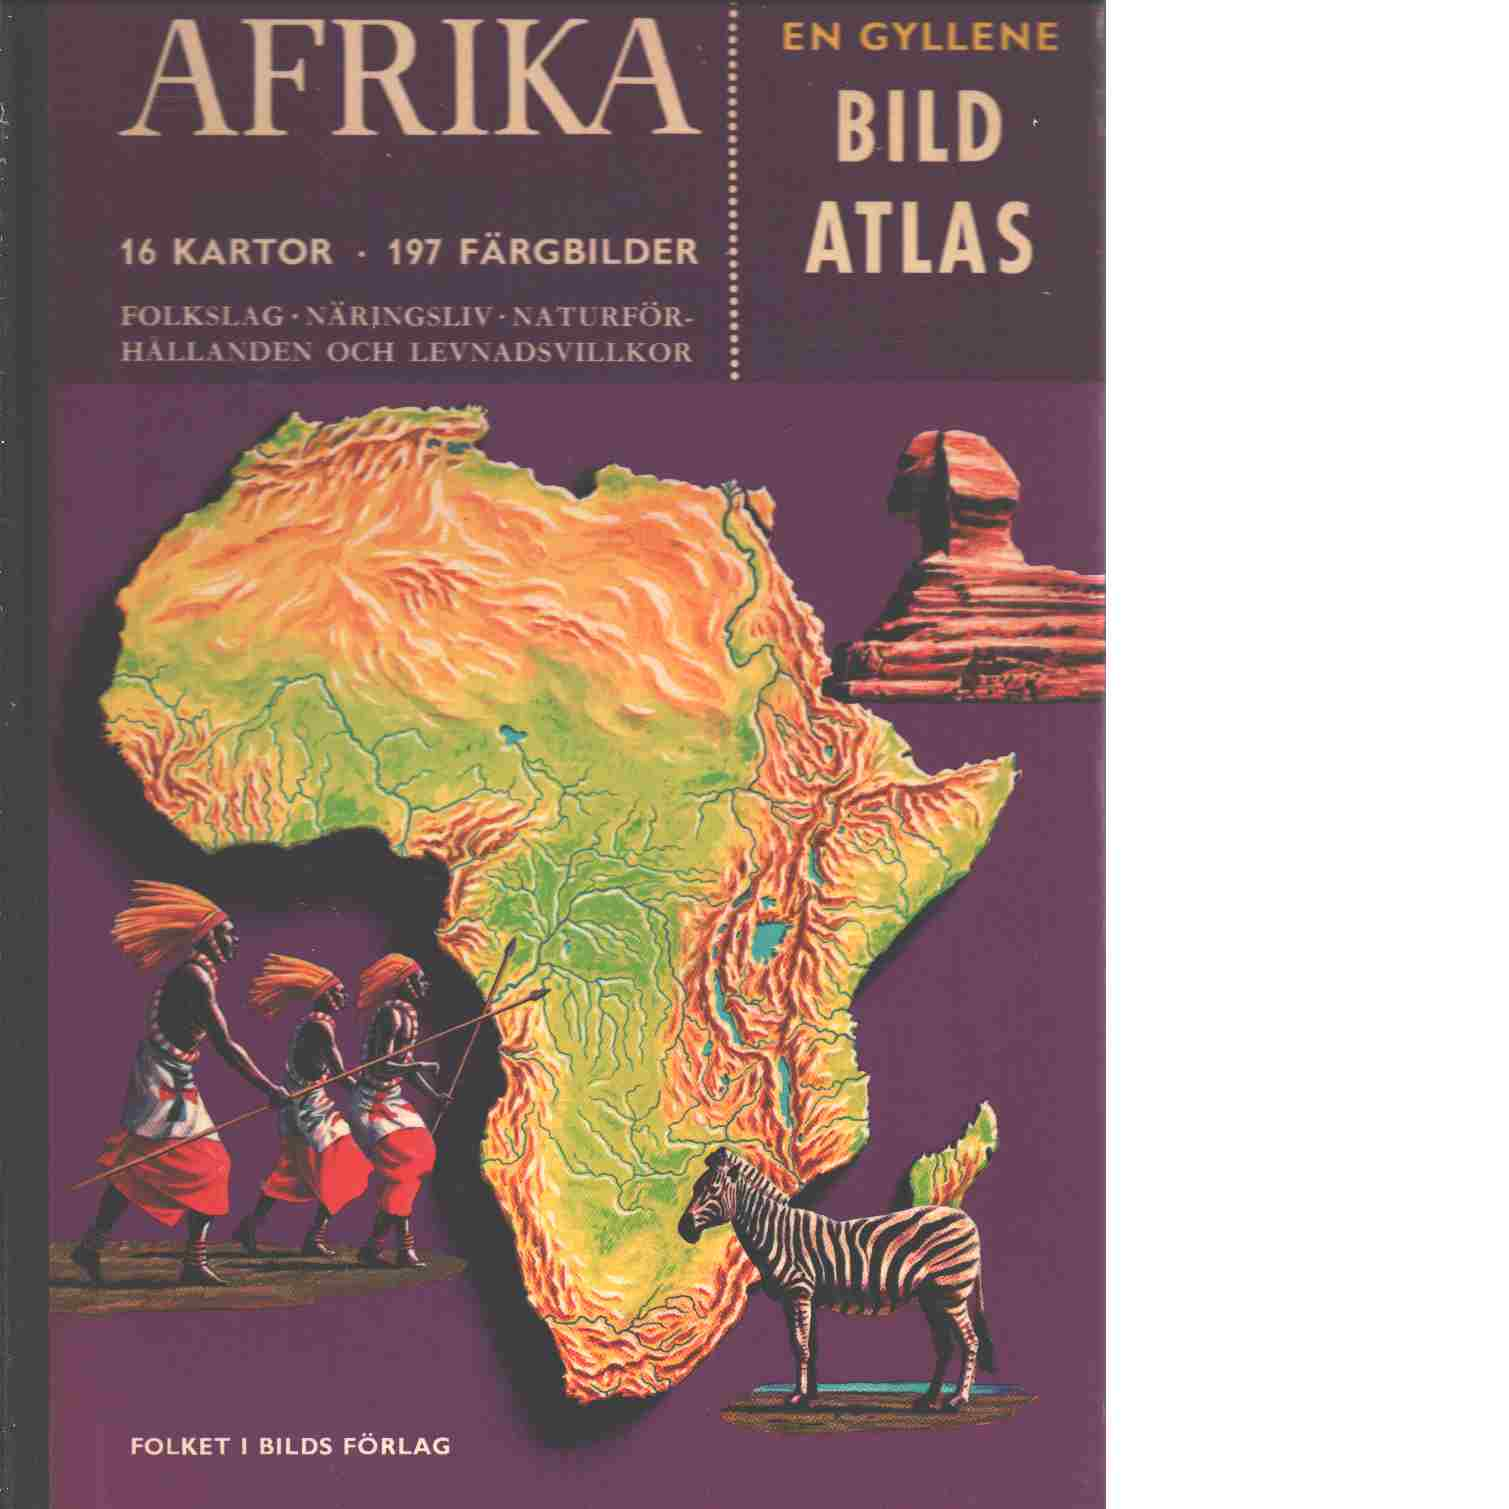 FIB:s gyllene bildatlas. 1, Afrika - Red. Bacon, Phillip och Lobsenz, Norman